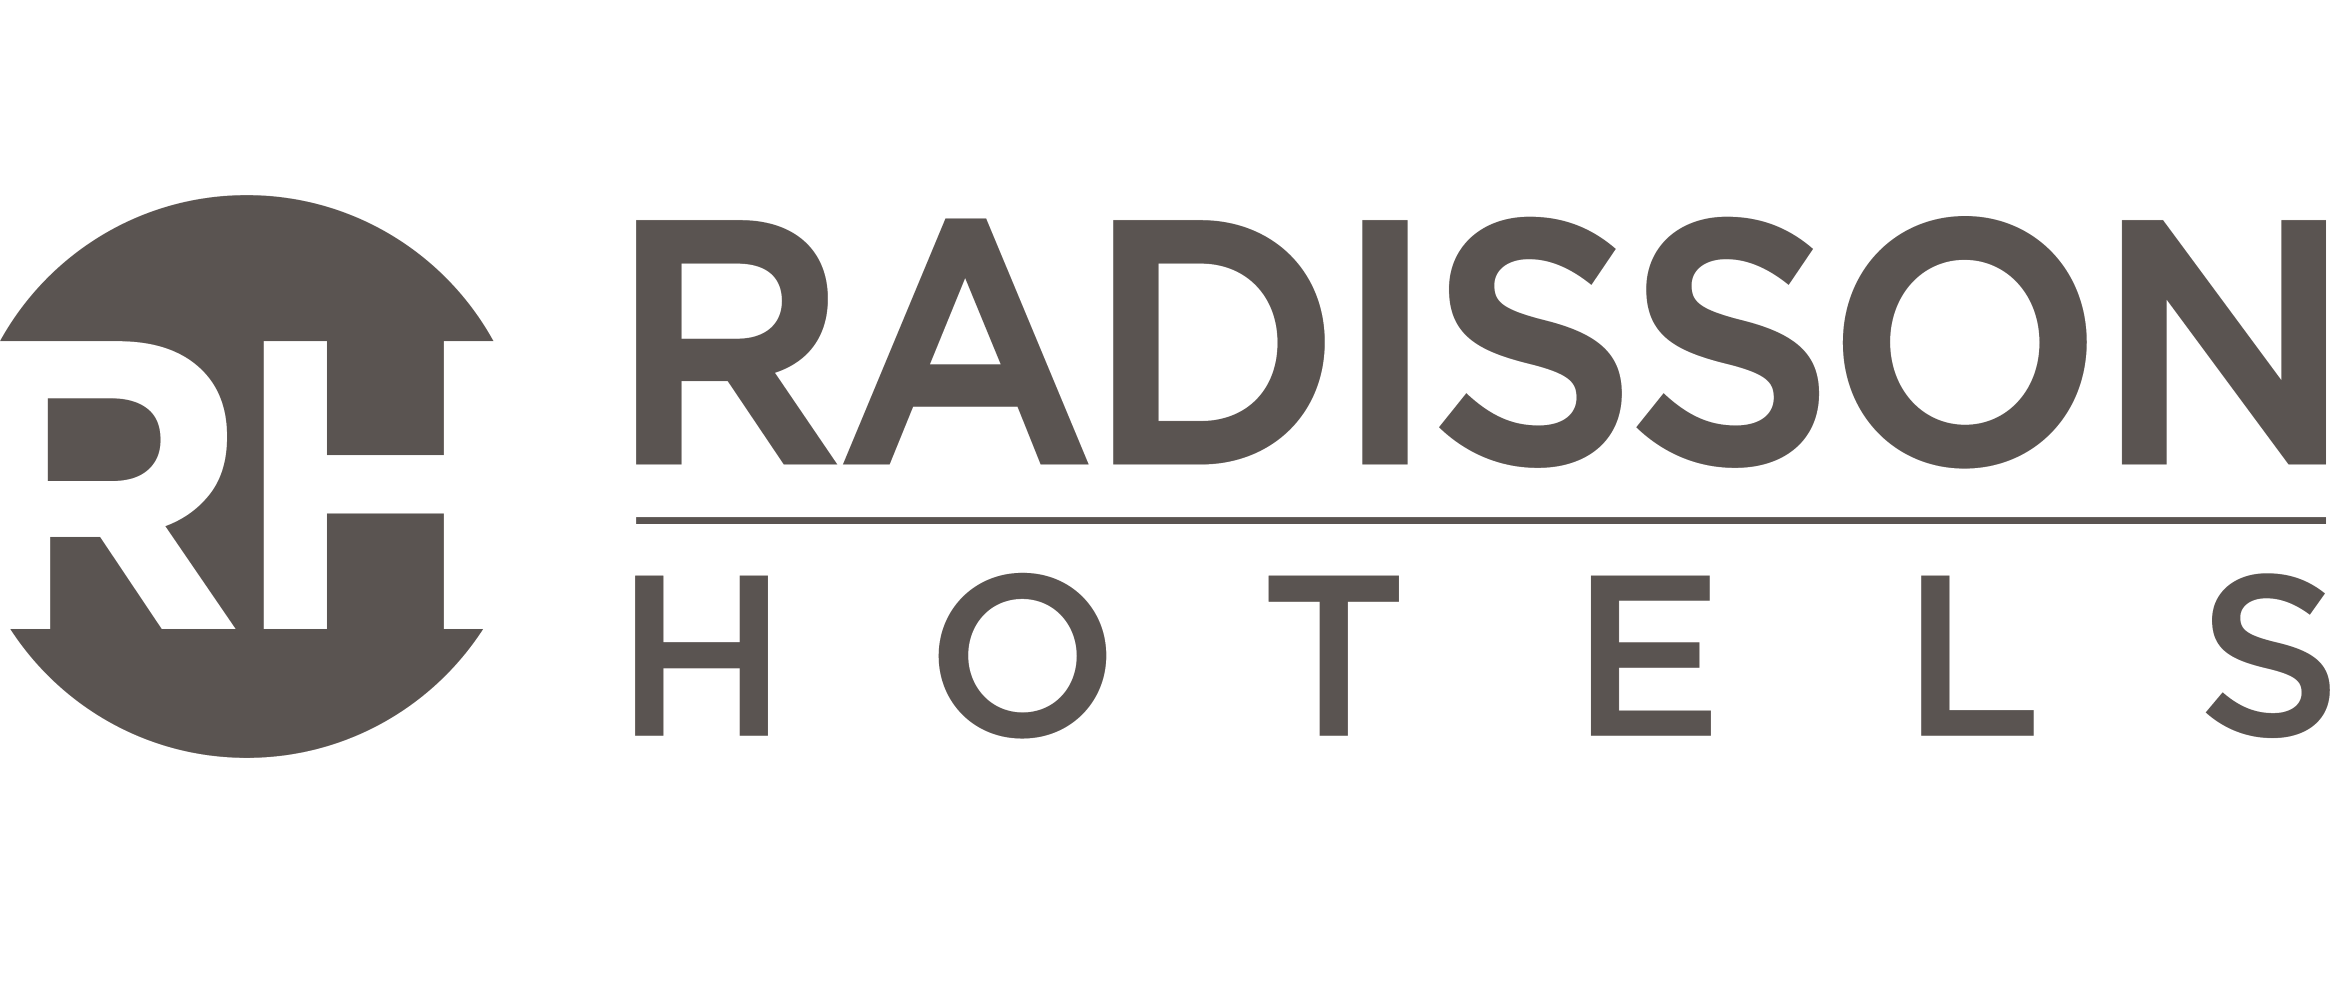 Radisson Hotels AE